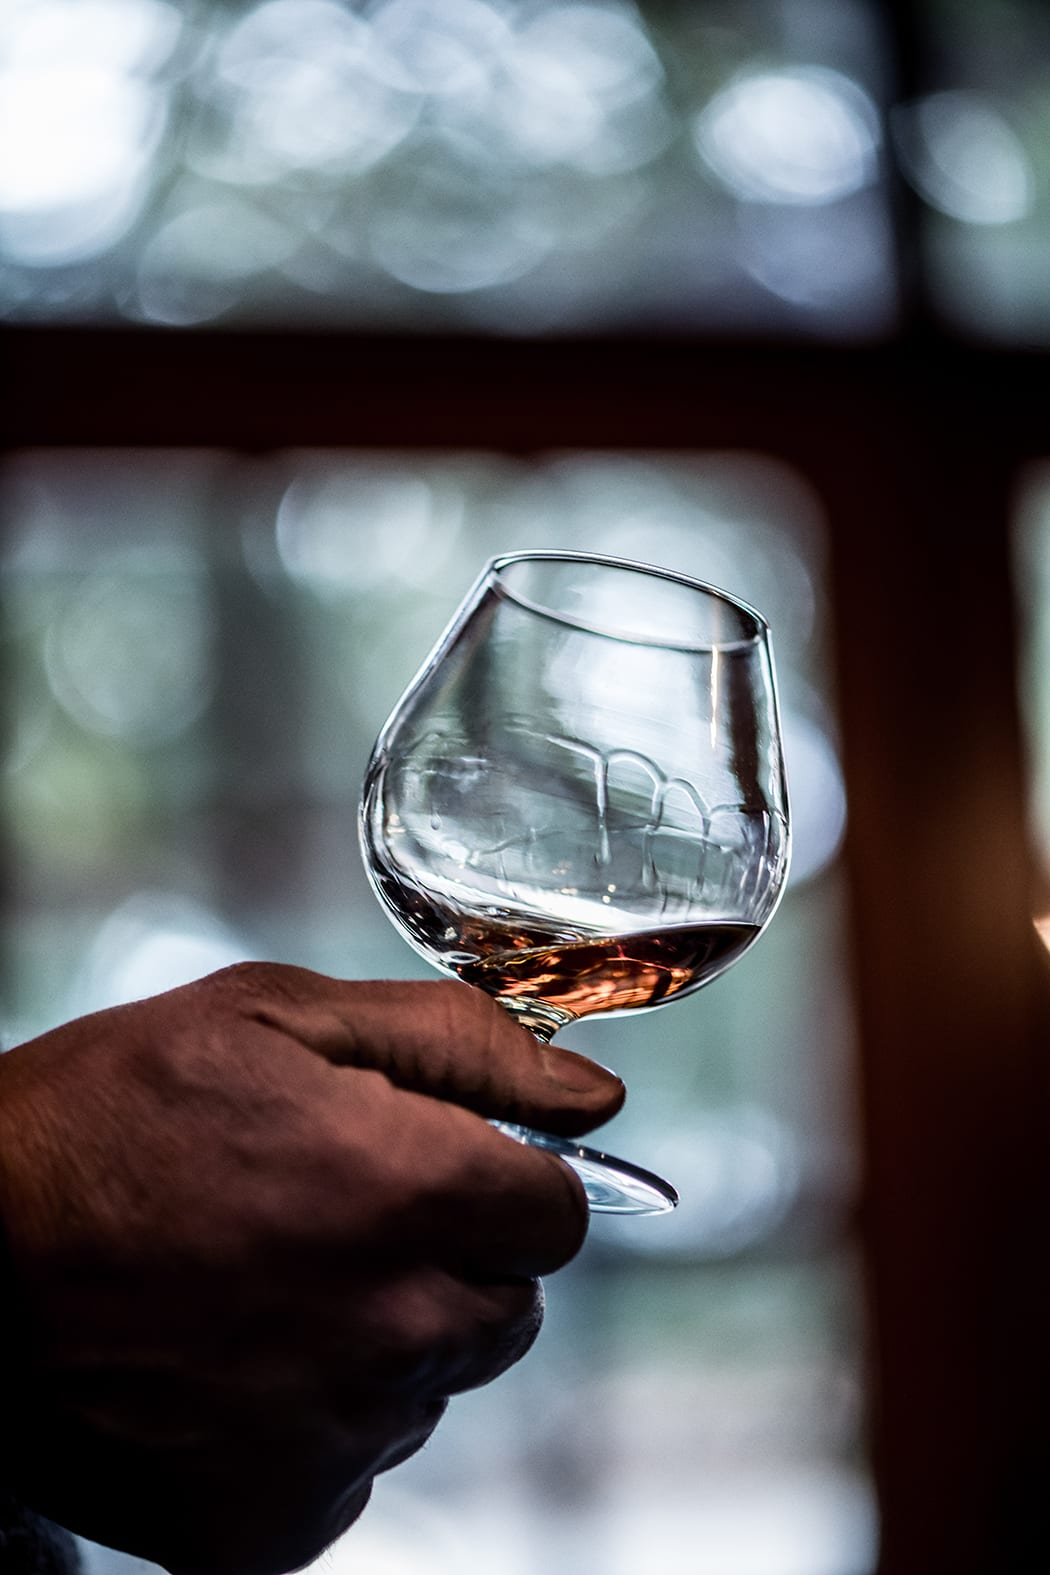 While some Armagnac is blended, much is bottled in vintages, like wine.